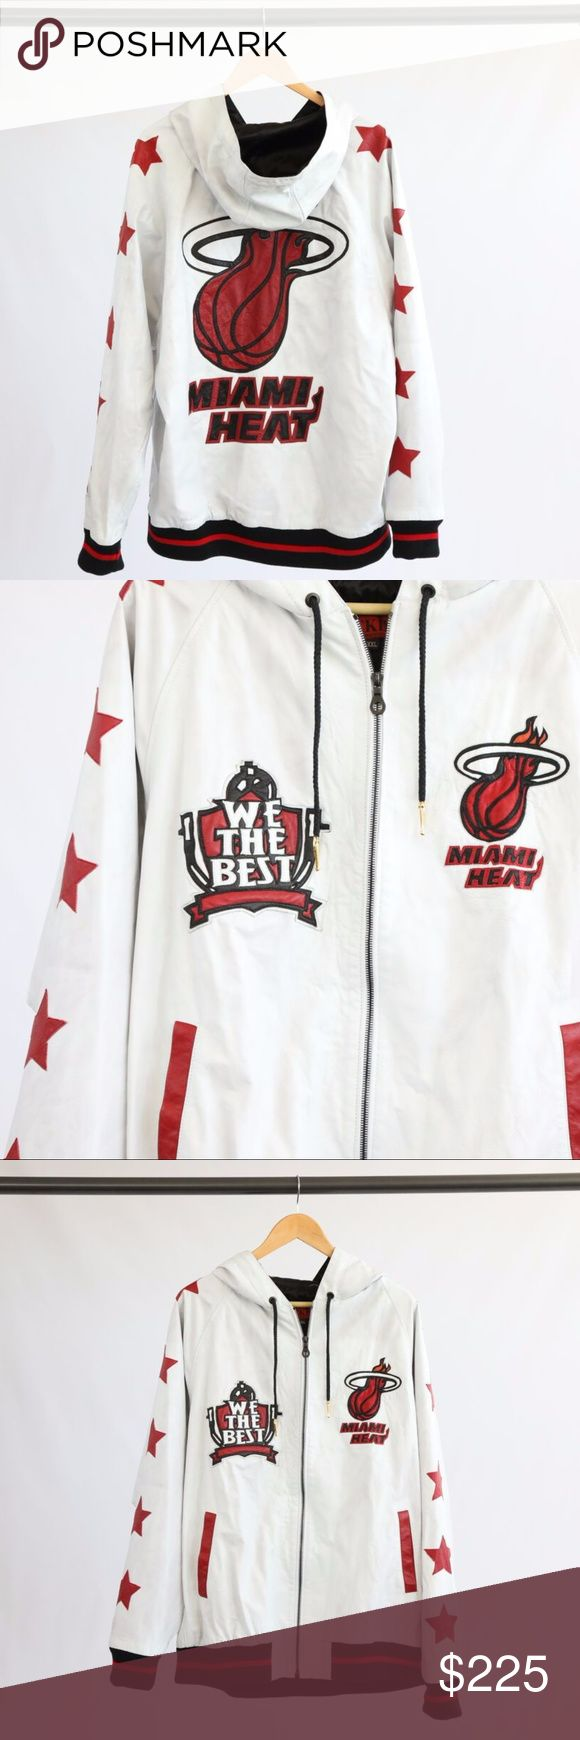 YEKIM Custom White Leather Hooded Jacket YEKIM custom white leather hooded jacket with We The Best and Miami Heat logos on chest. Red stars down each arm and large Miami Heat Logo on back. YEKIM Jackets & Coats